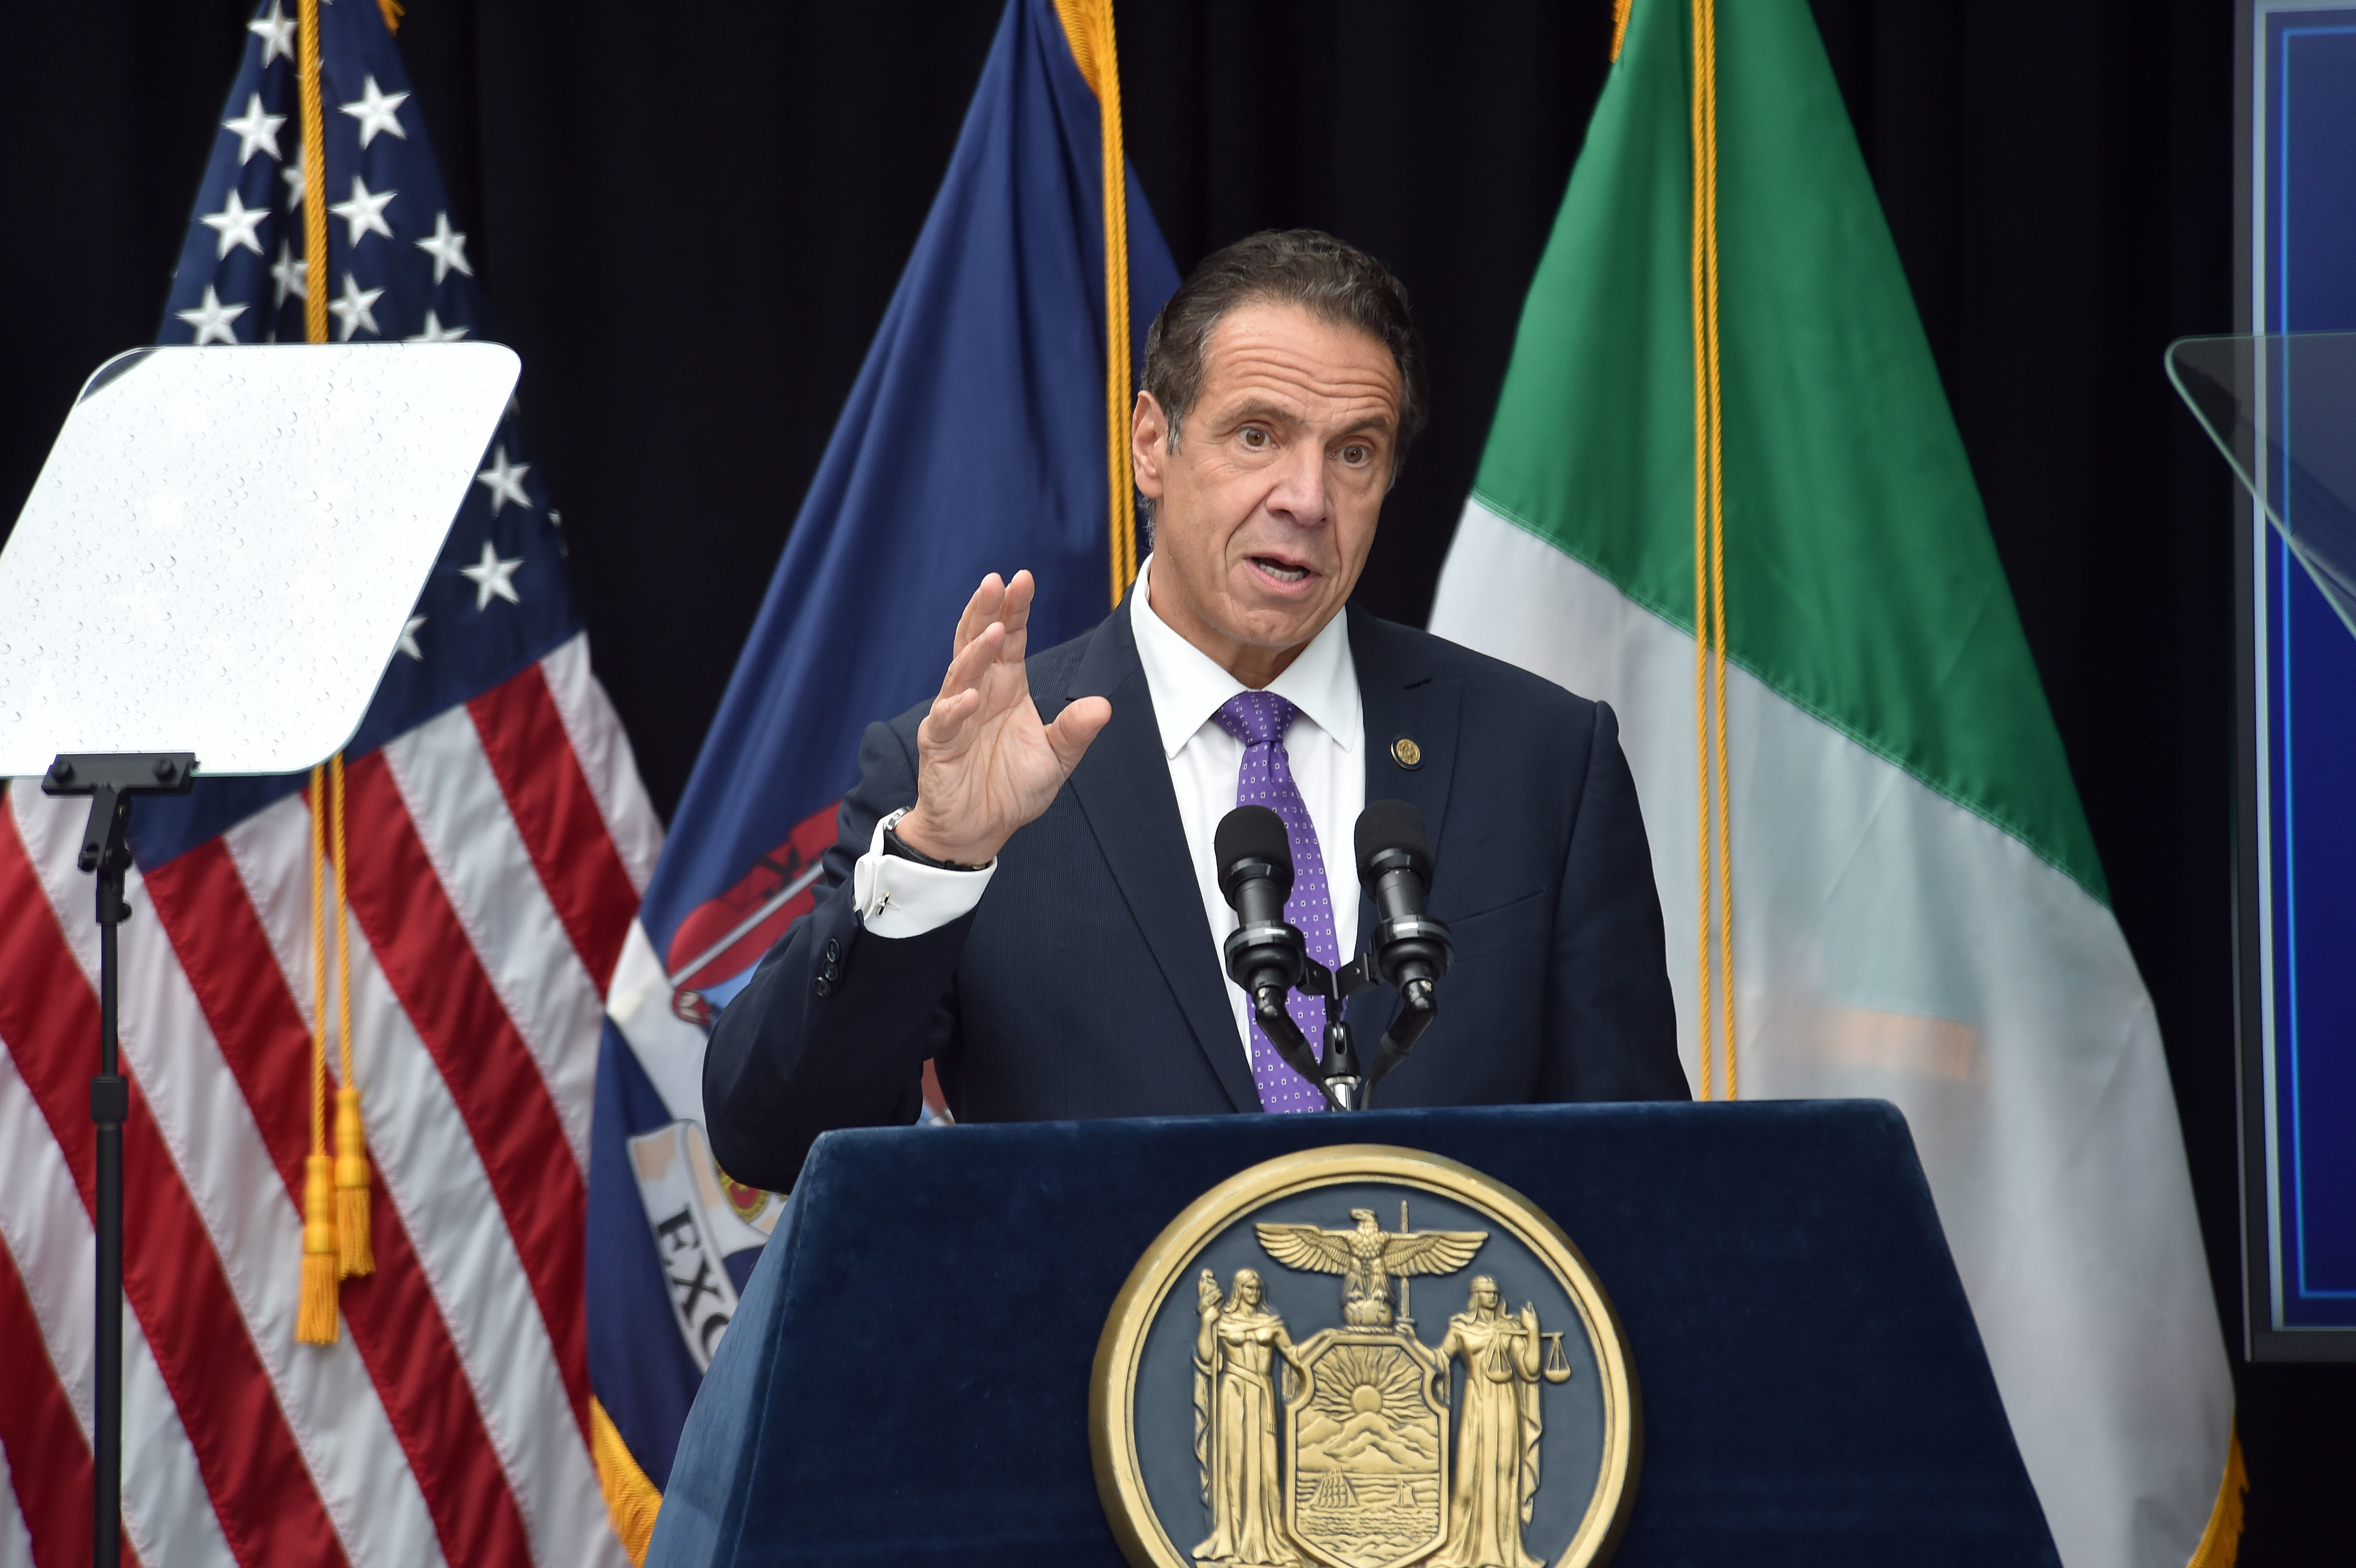 Gov. Cuomo Signs Order to Withhold Funding From Any Schools That Remain Open In Red Zones